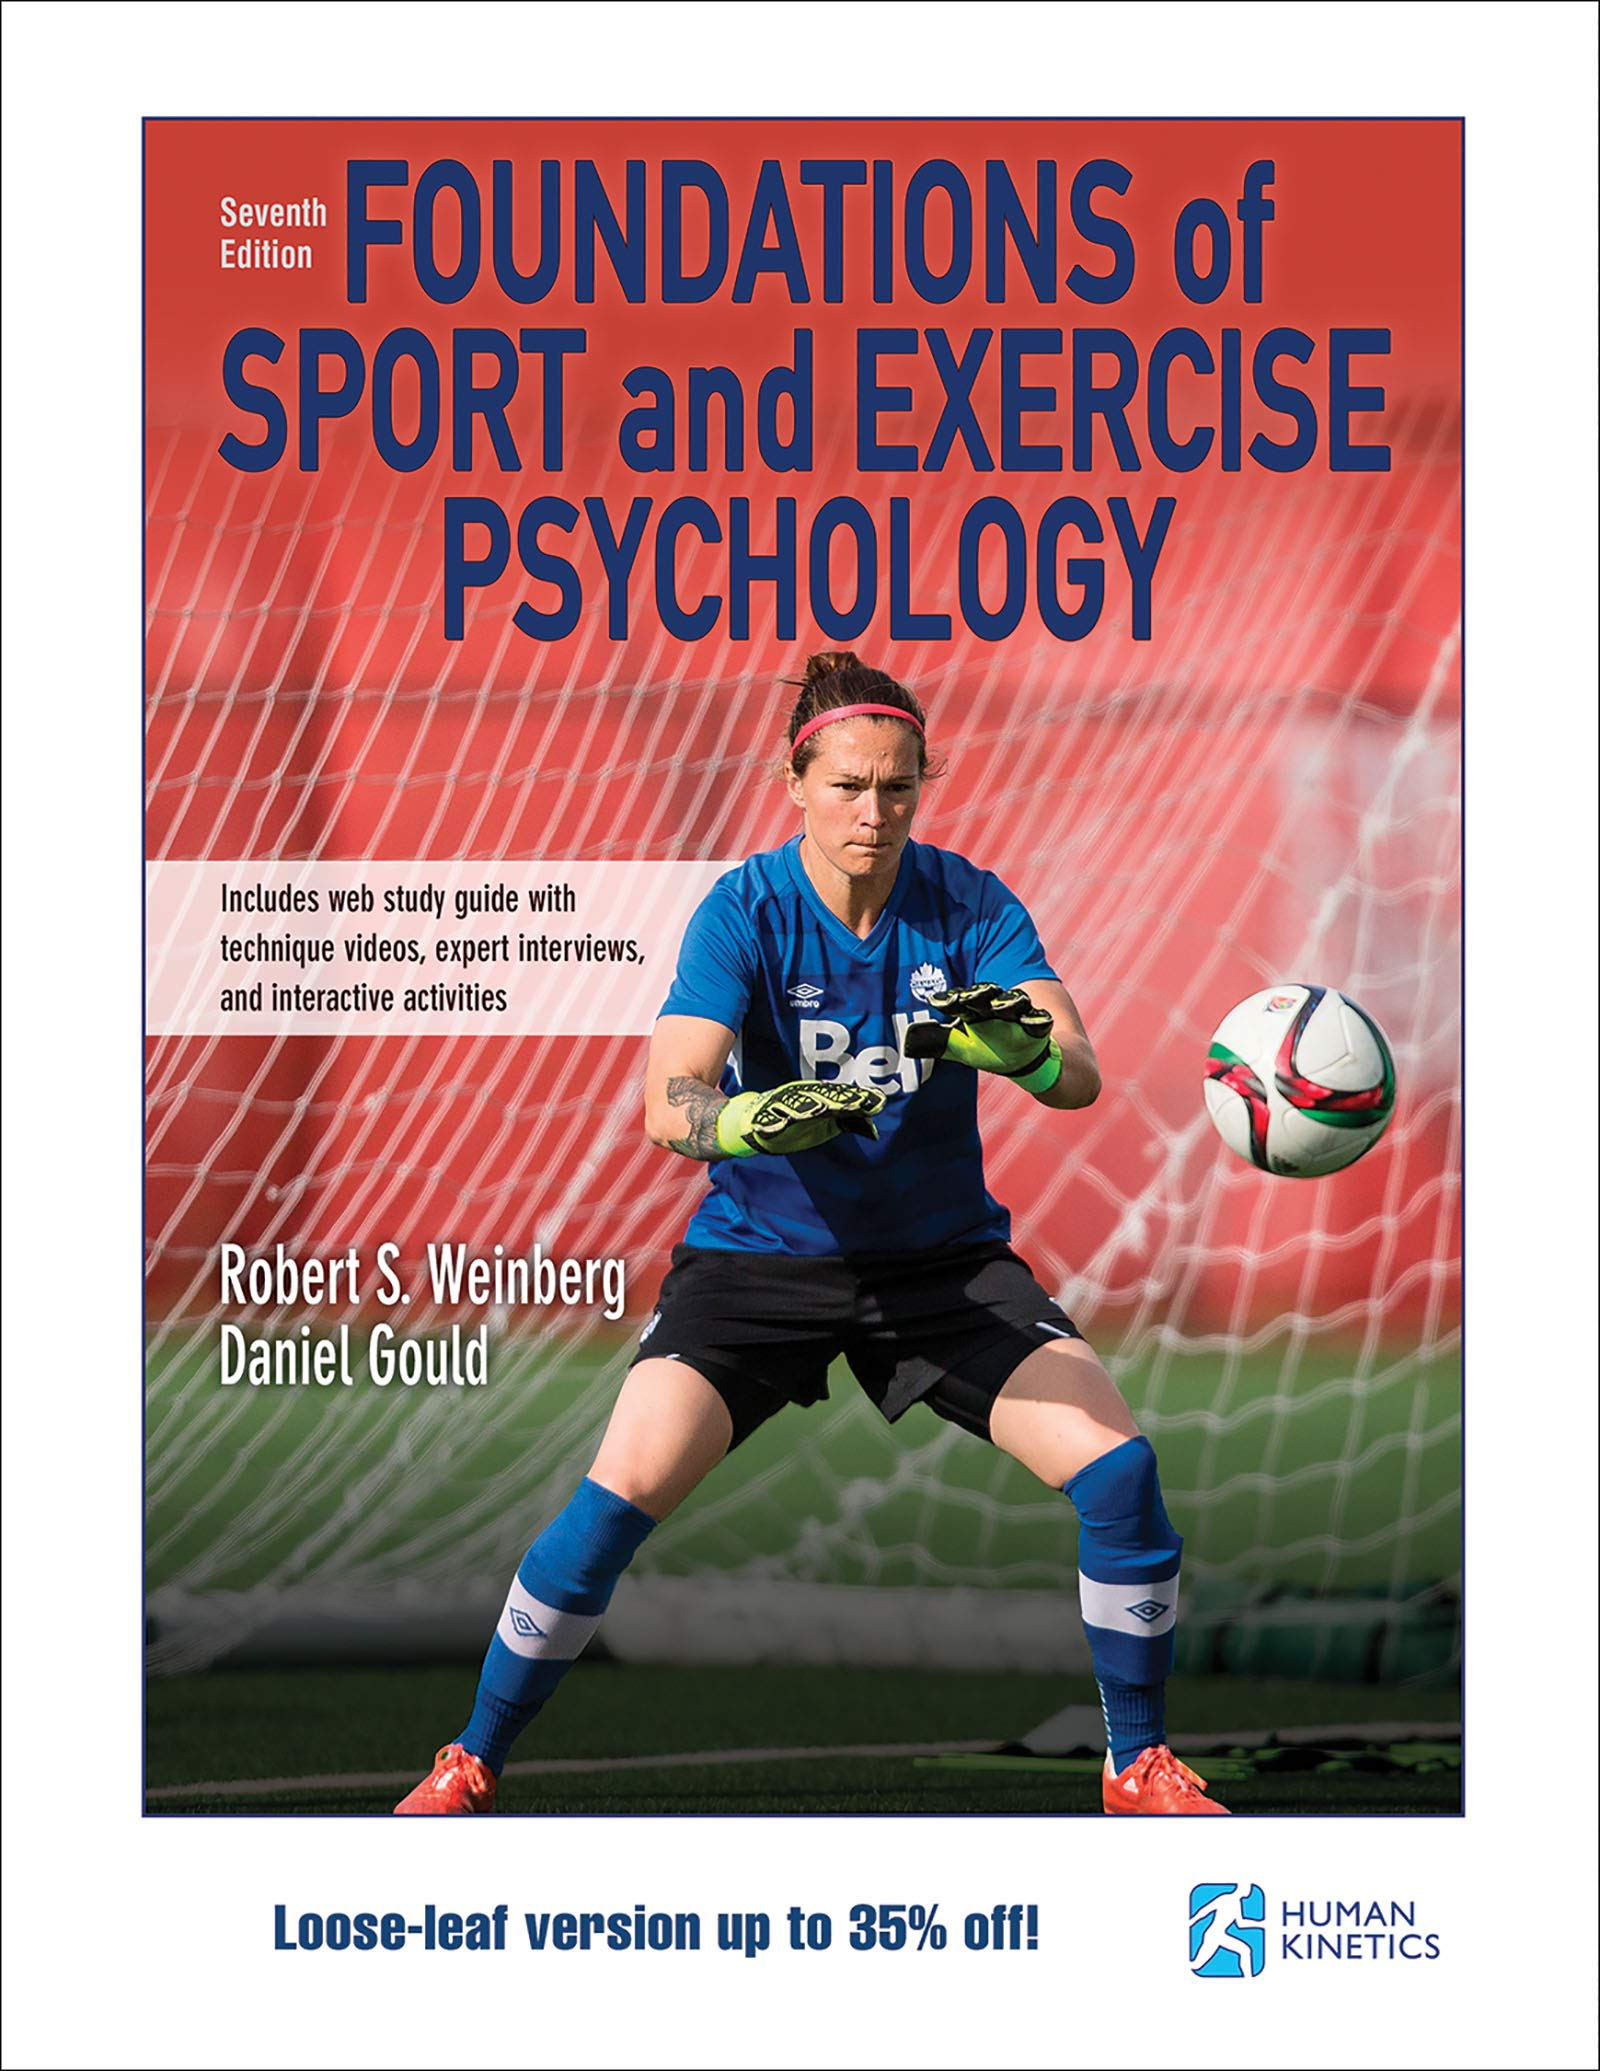 Foundations of Sport and Exercise Psychology by Human Kinetics